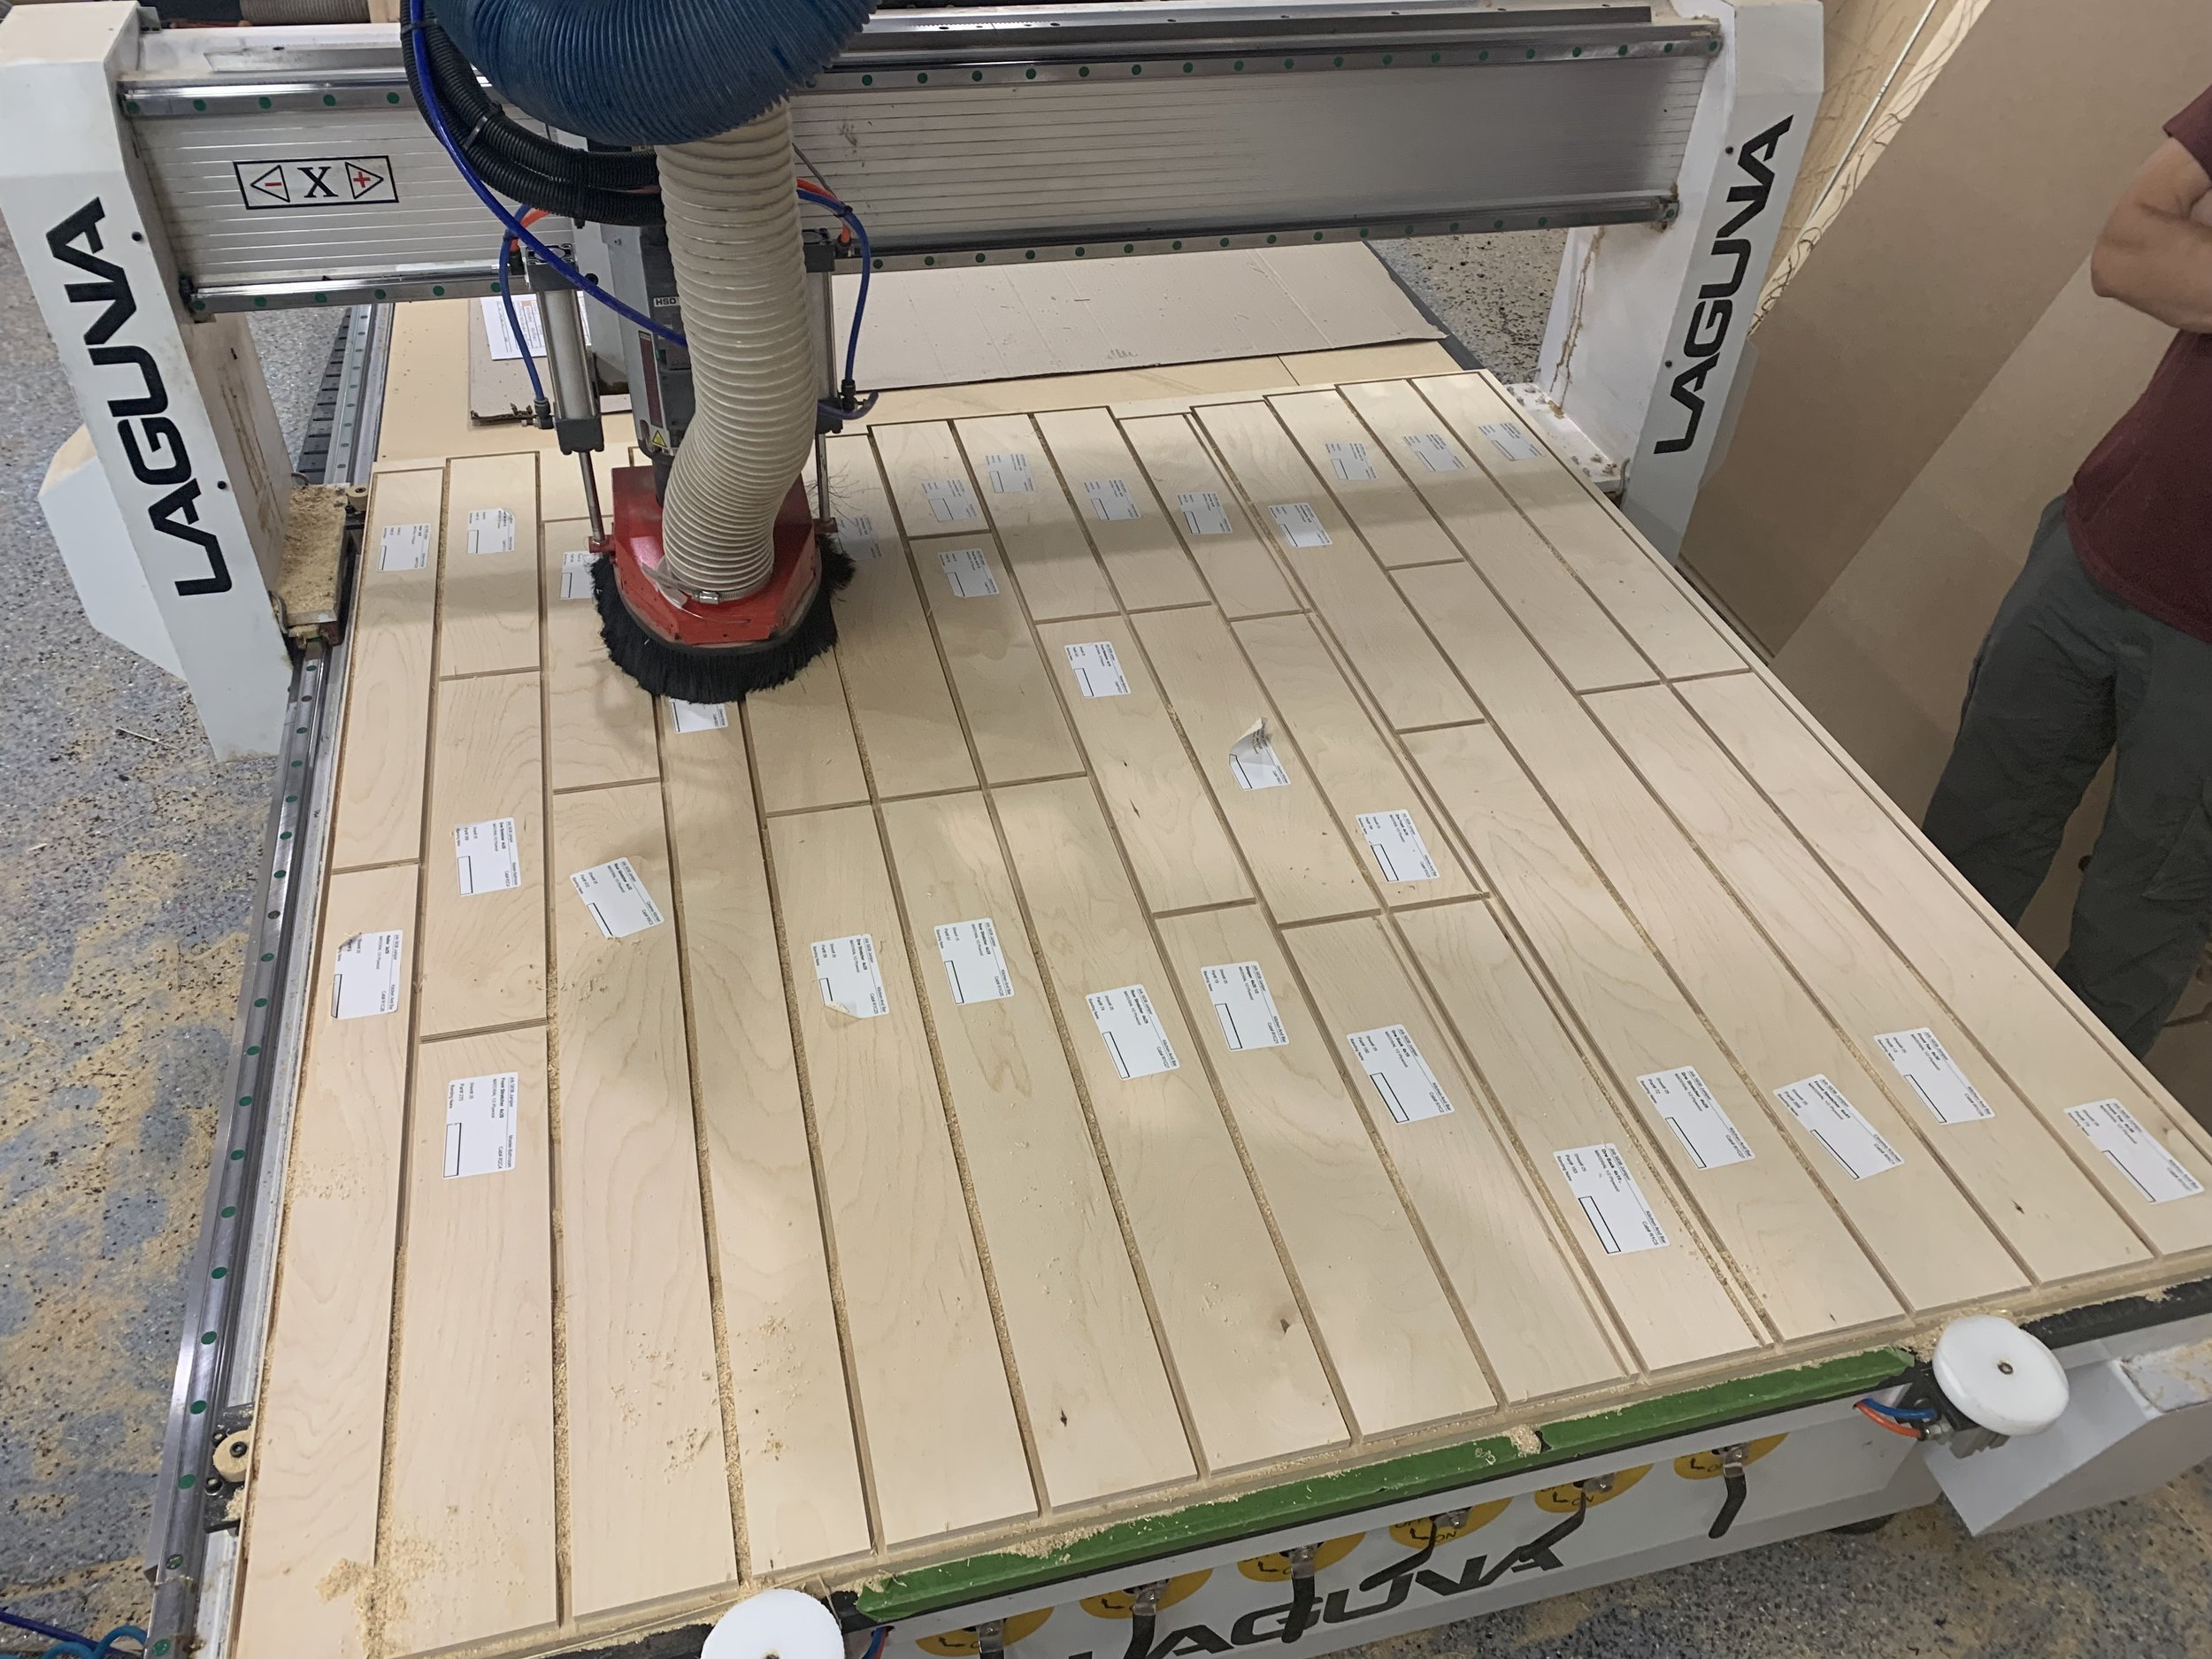 High density of drawer fronts, toe kicks and cleats being machined